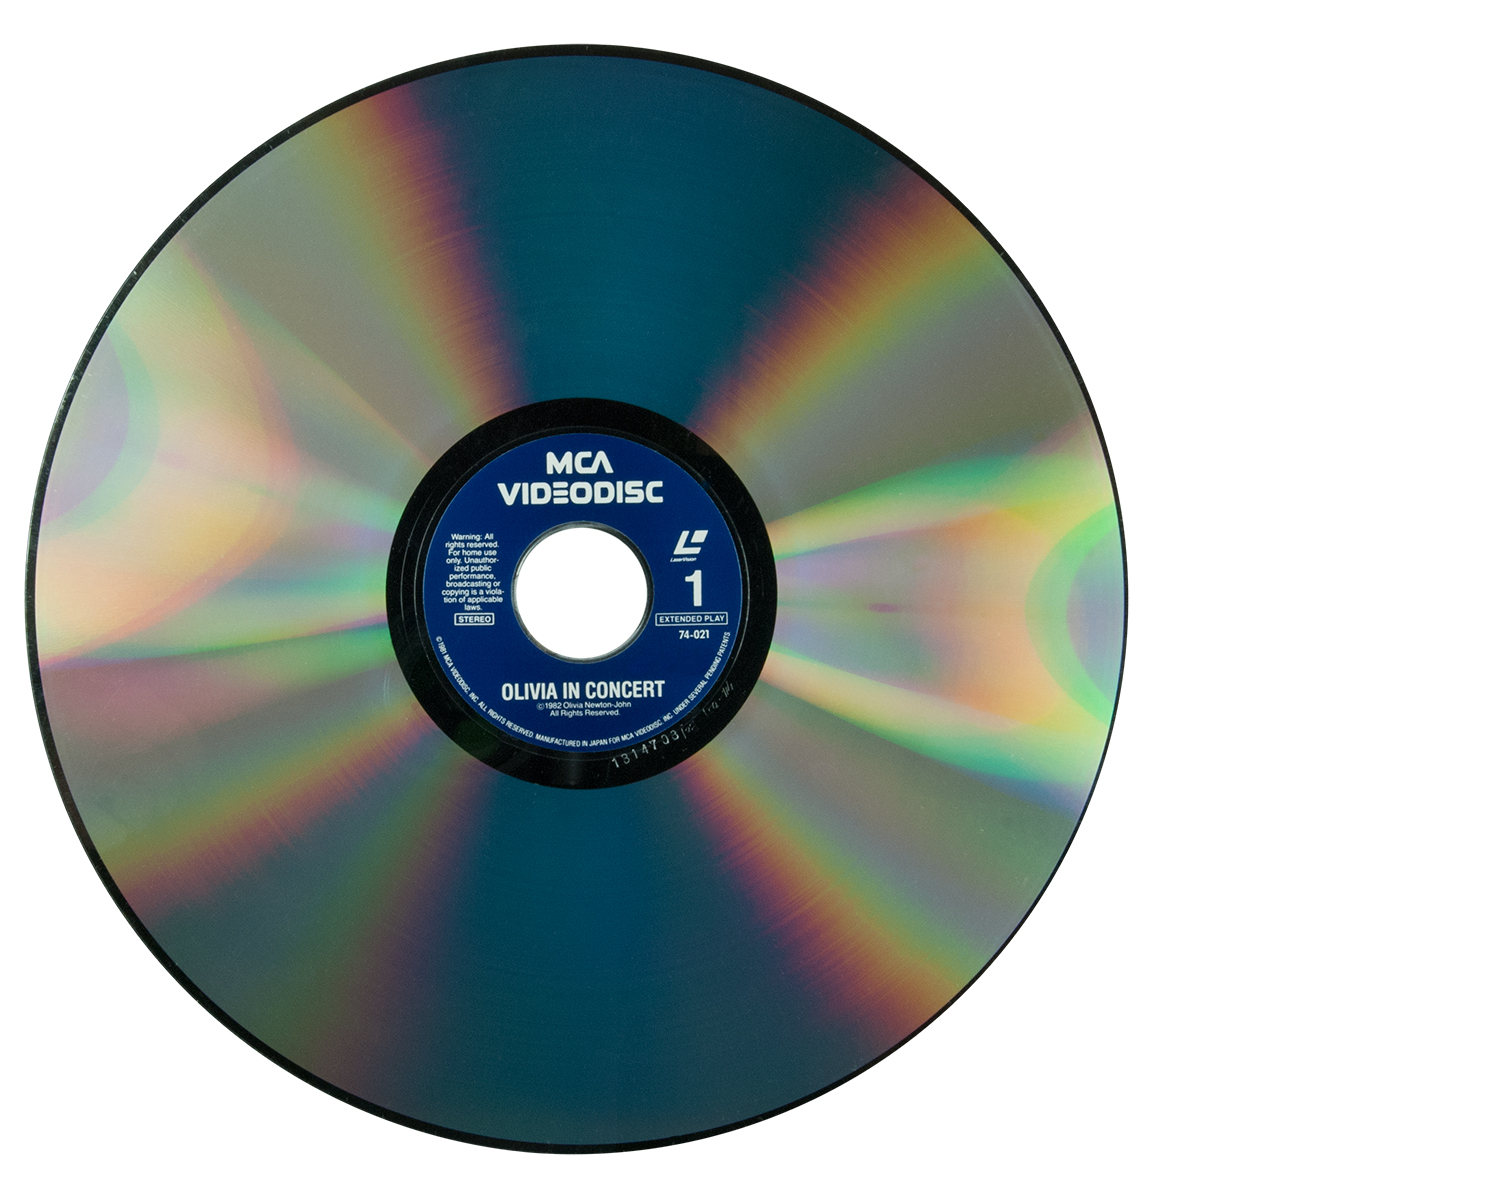 15 History Of Audio Formats 45 Record Adapters